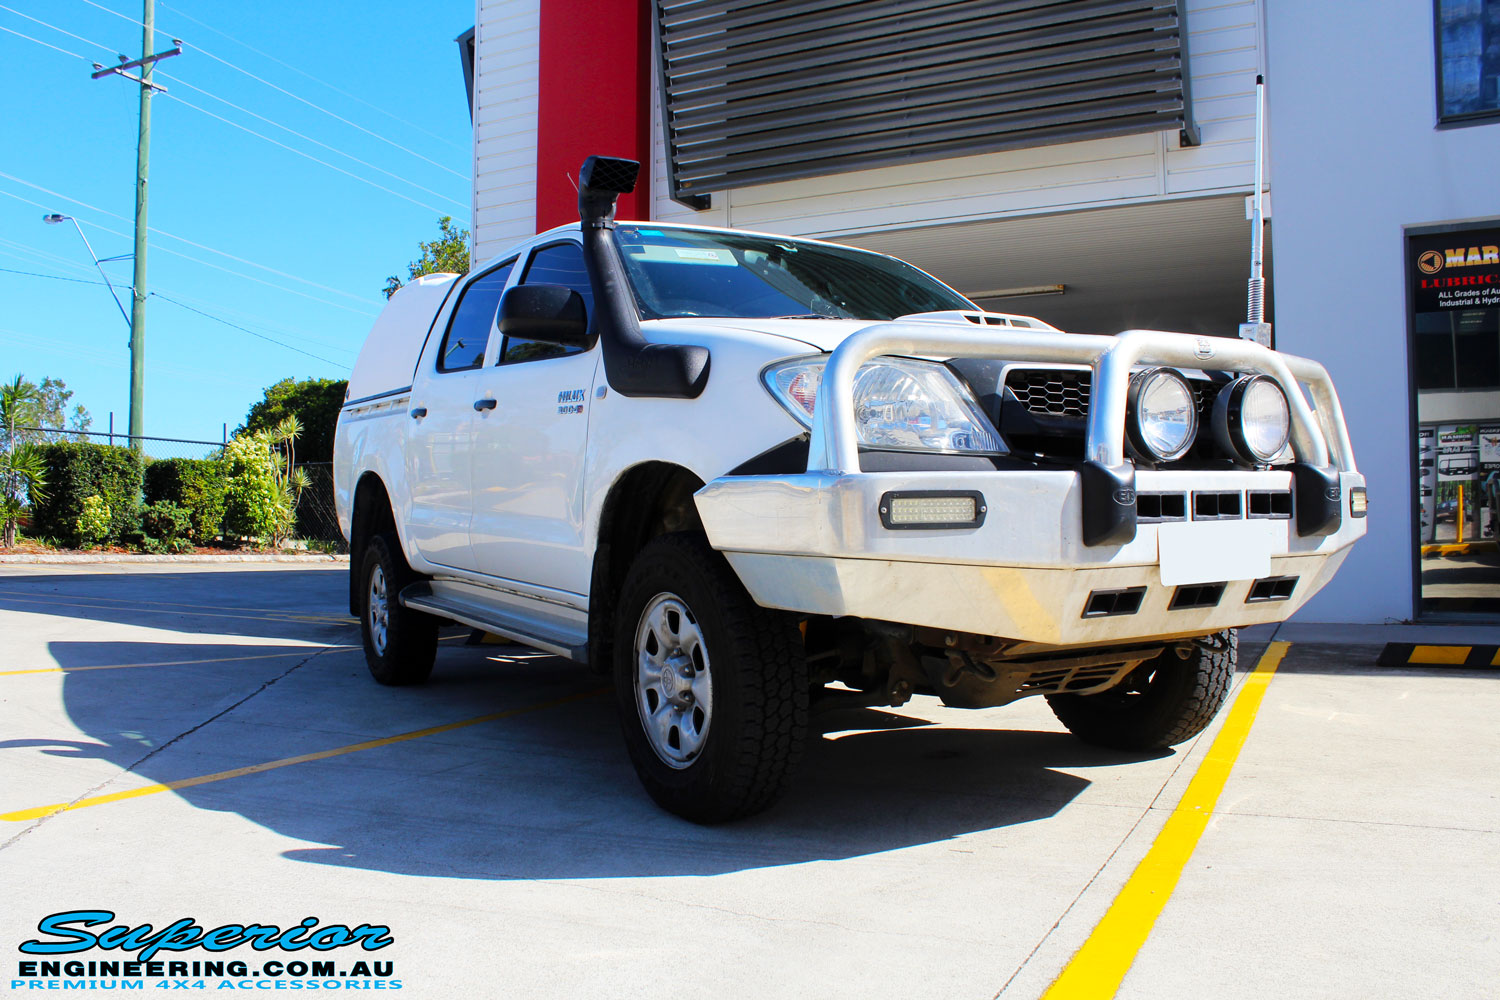 "Right front side view of a White Toyota Vigo Hilux Dual Cab after fitment of a 2"" Inch Lift Kit"